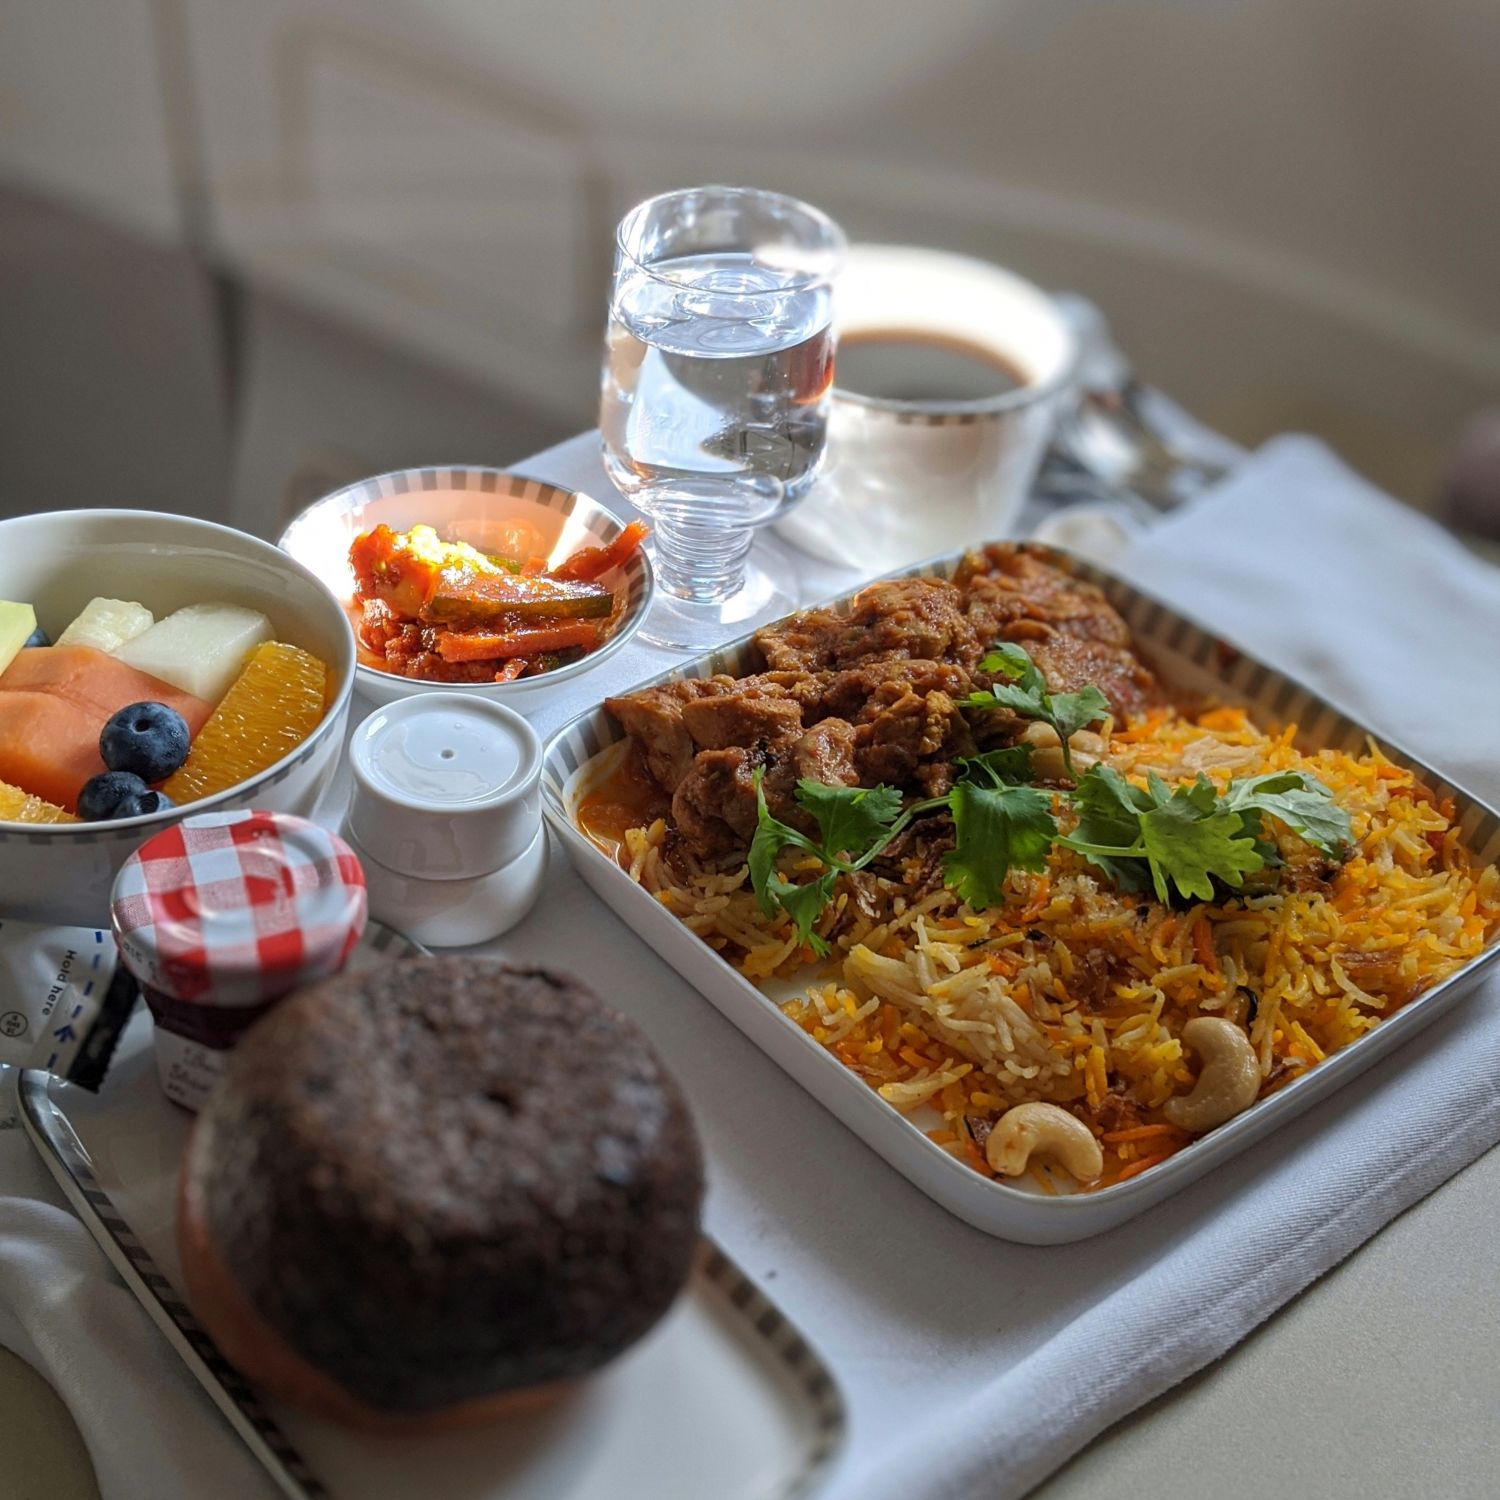 Regional Business Class on Singapore Airlines SQ998 Airbus A330-300 Book the Cook Nasi Briyani